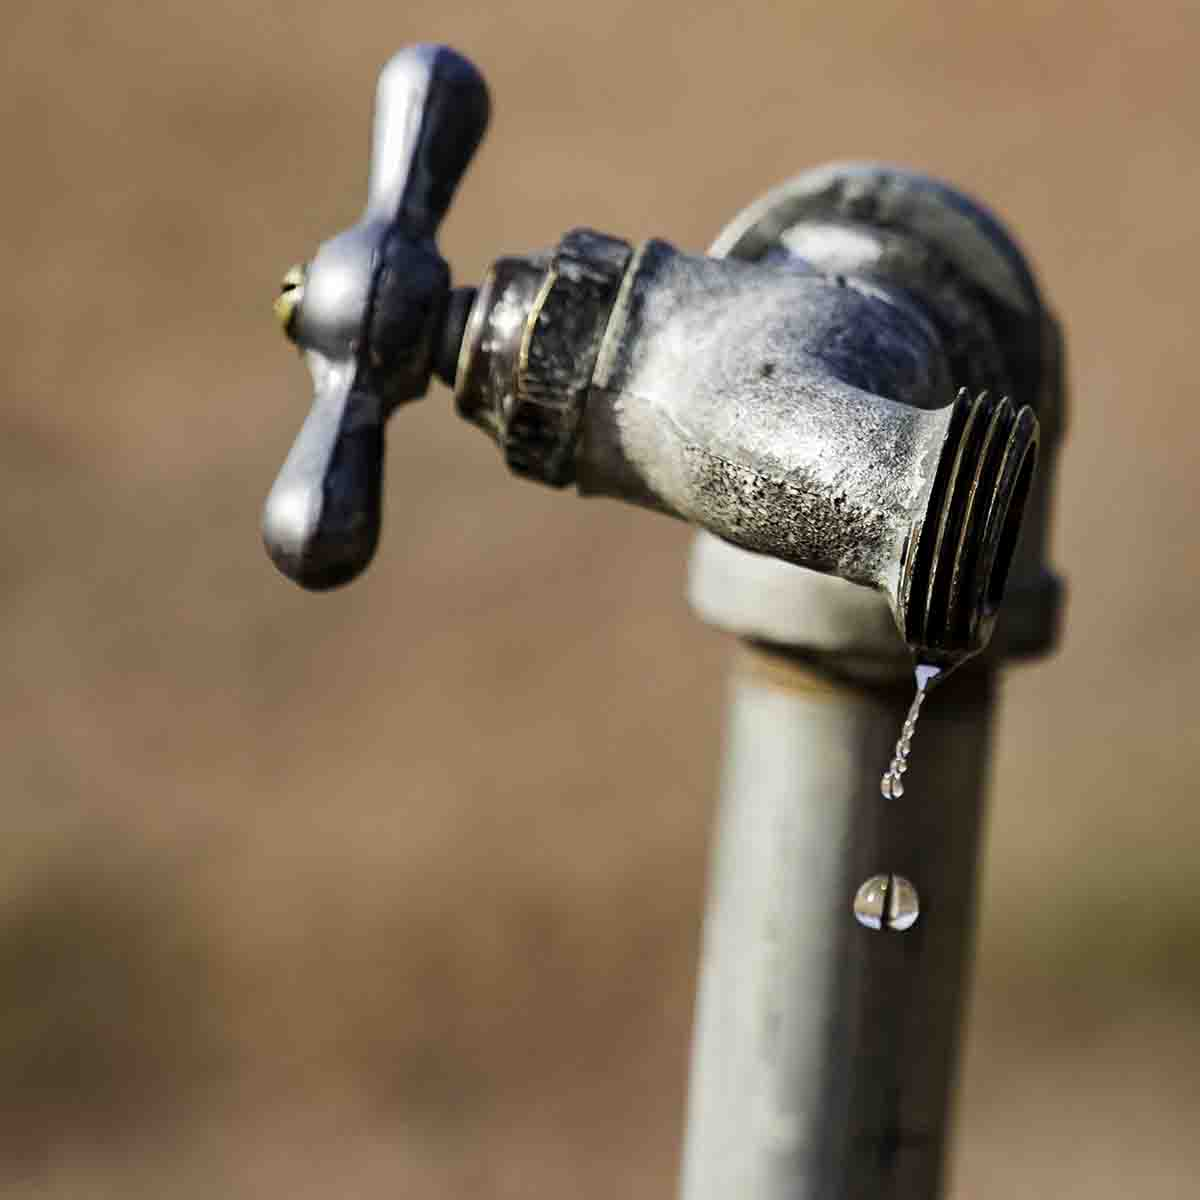 How To Keep Outside Faucet From Freezing